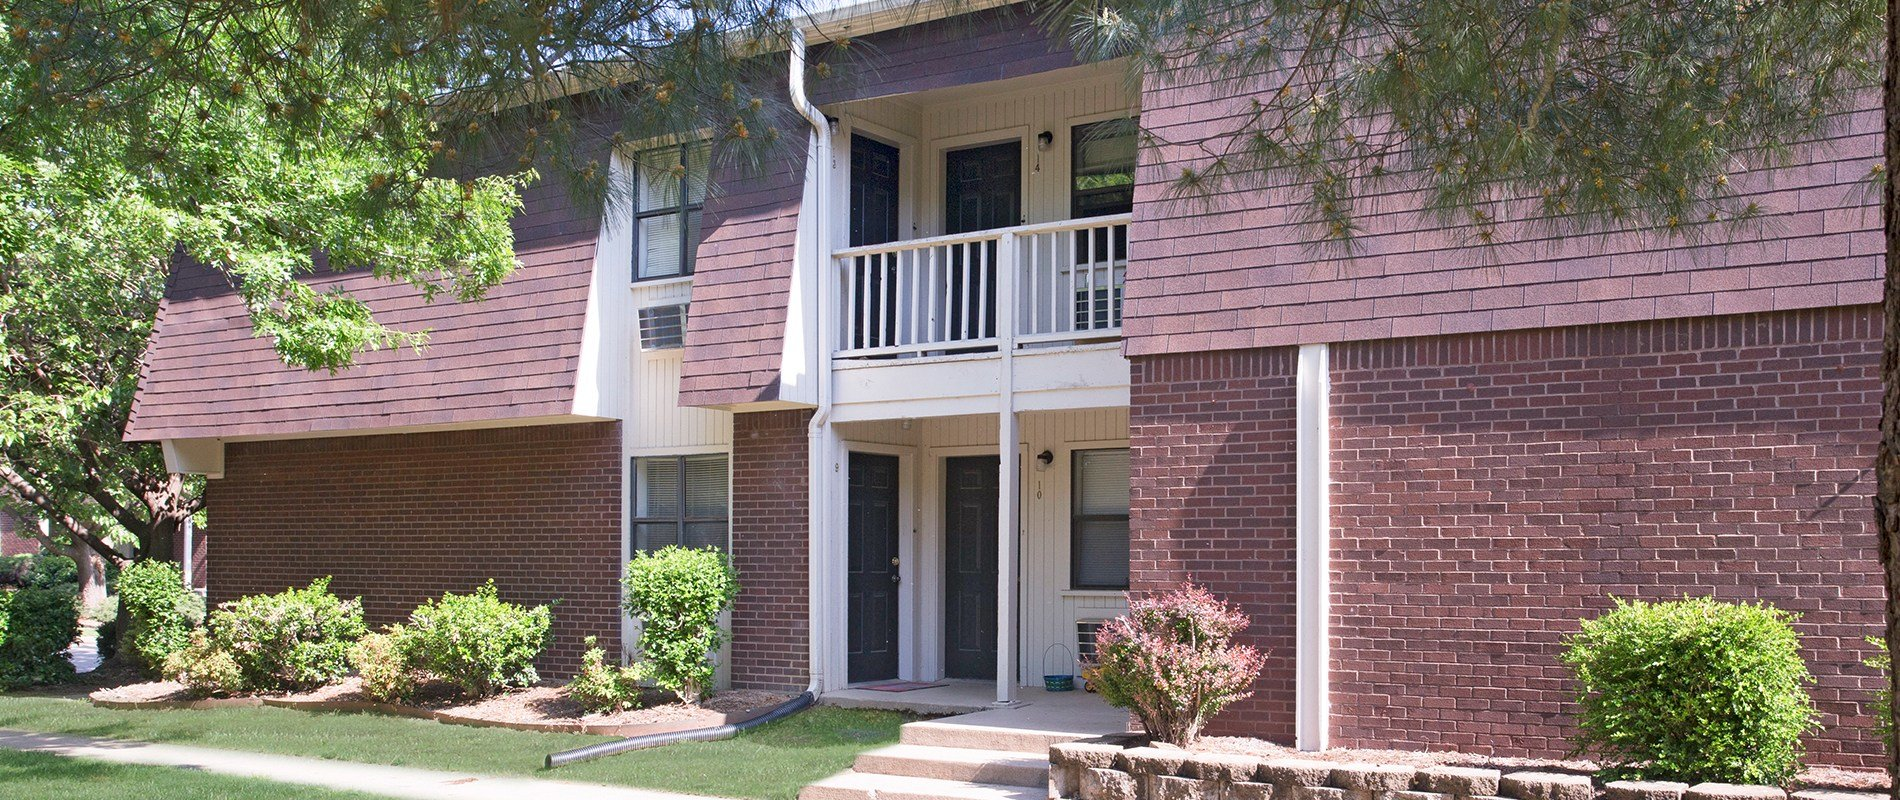 Best Chestnut Ii Apartments In Fayetteville One Bedroom Ar With Pictures Original 1024 x 768